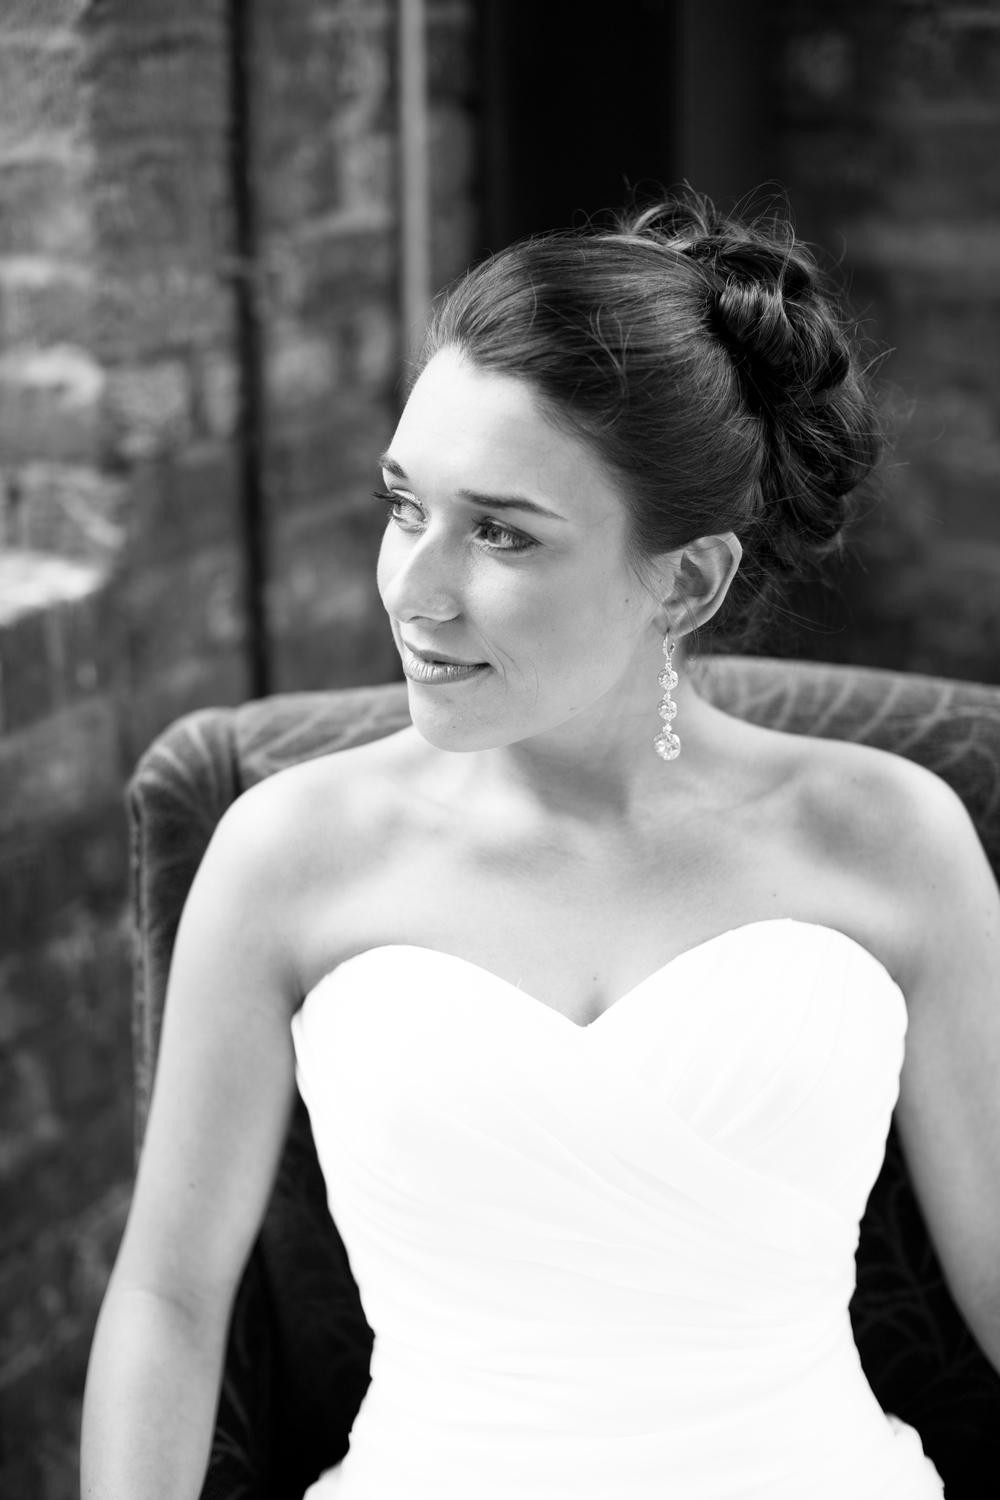 Caroline Bunch_Bridal Portraits-194.jpg